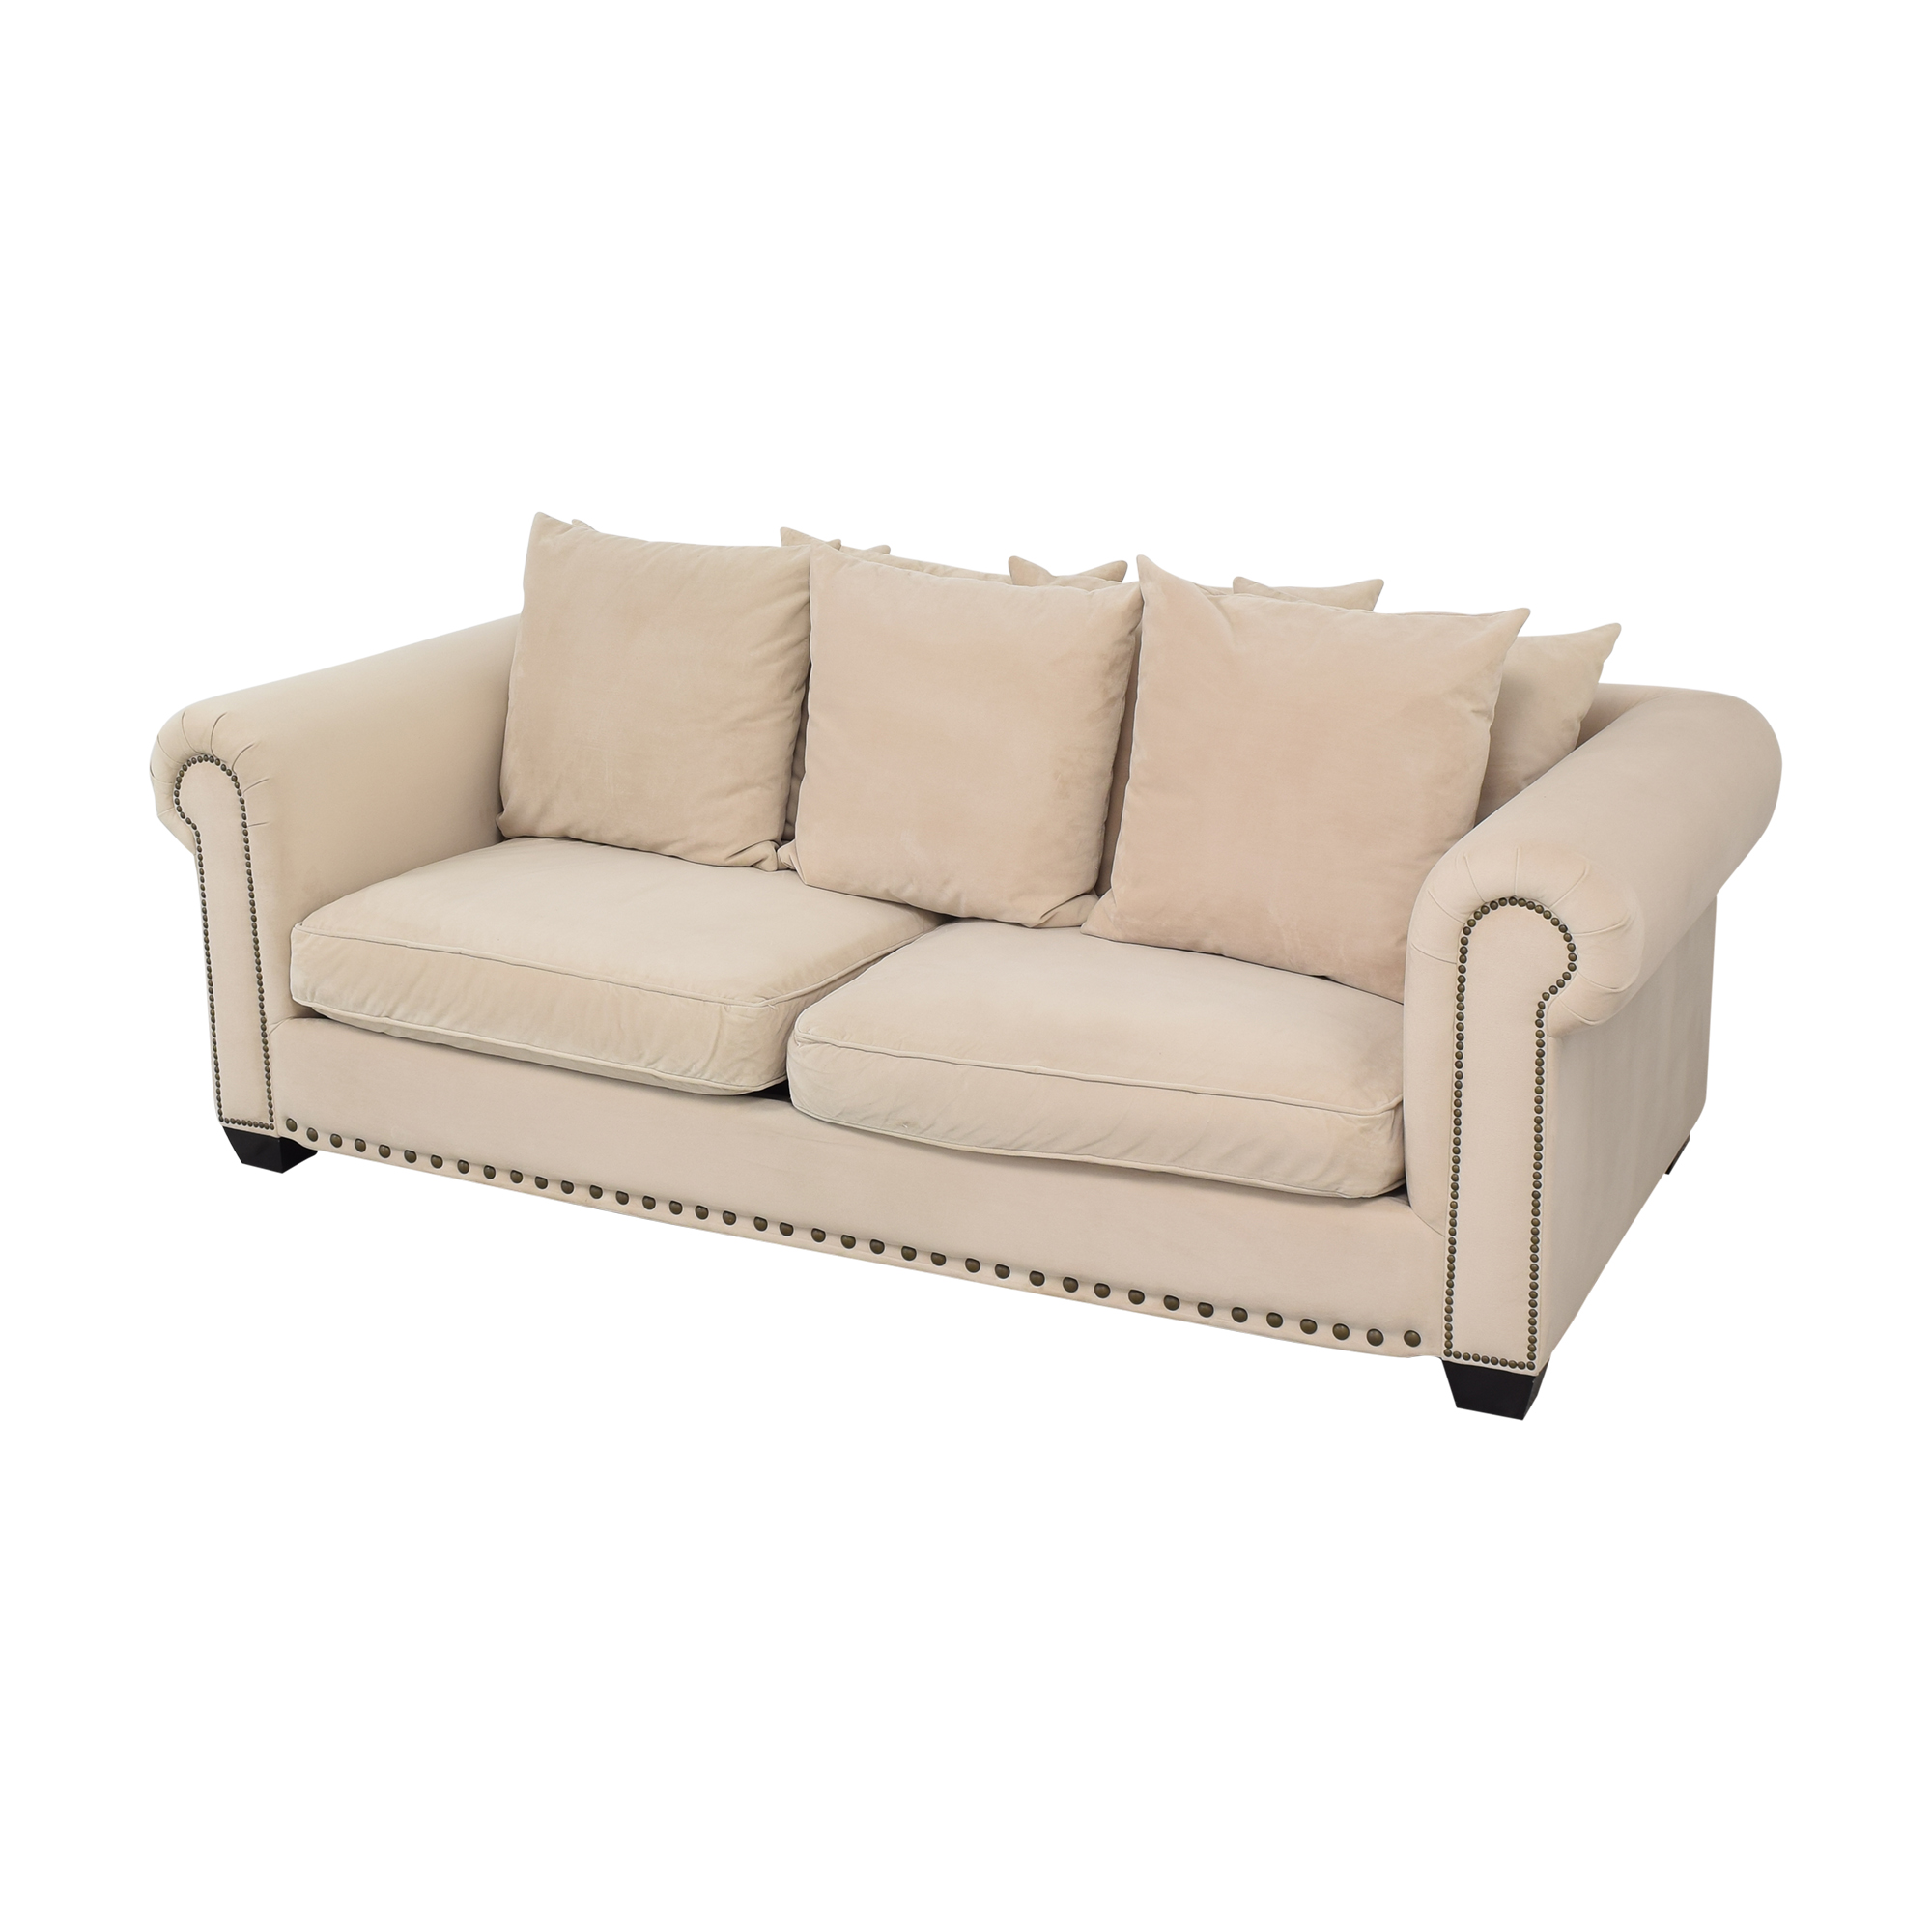 Z Gallerie Z Gallerie Linden Sofa for sale